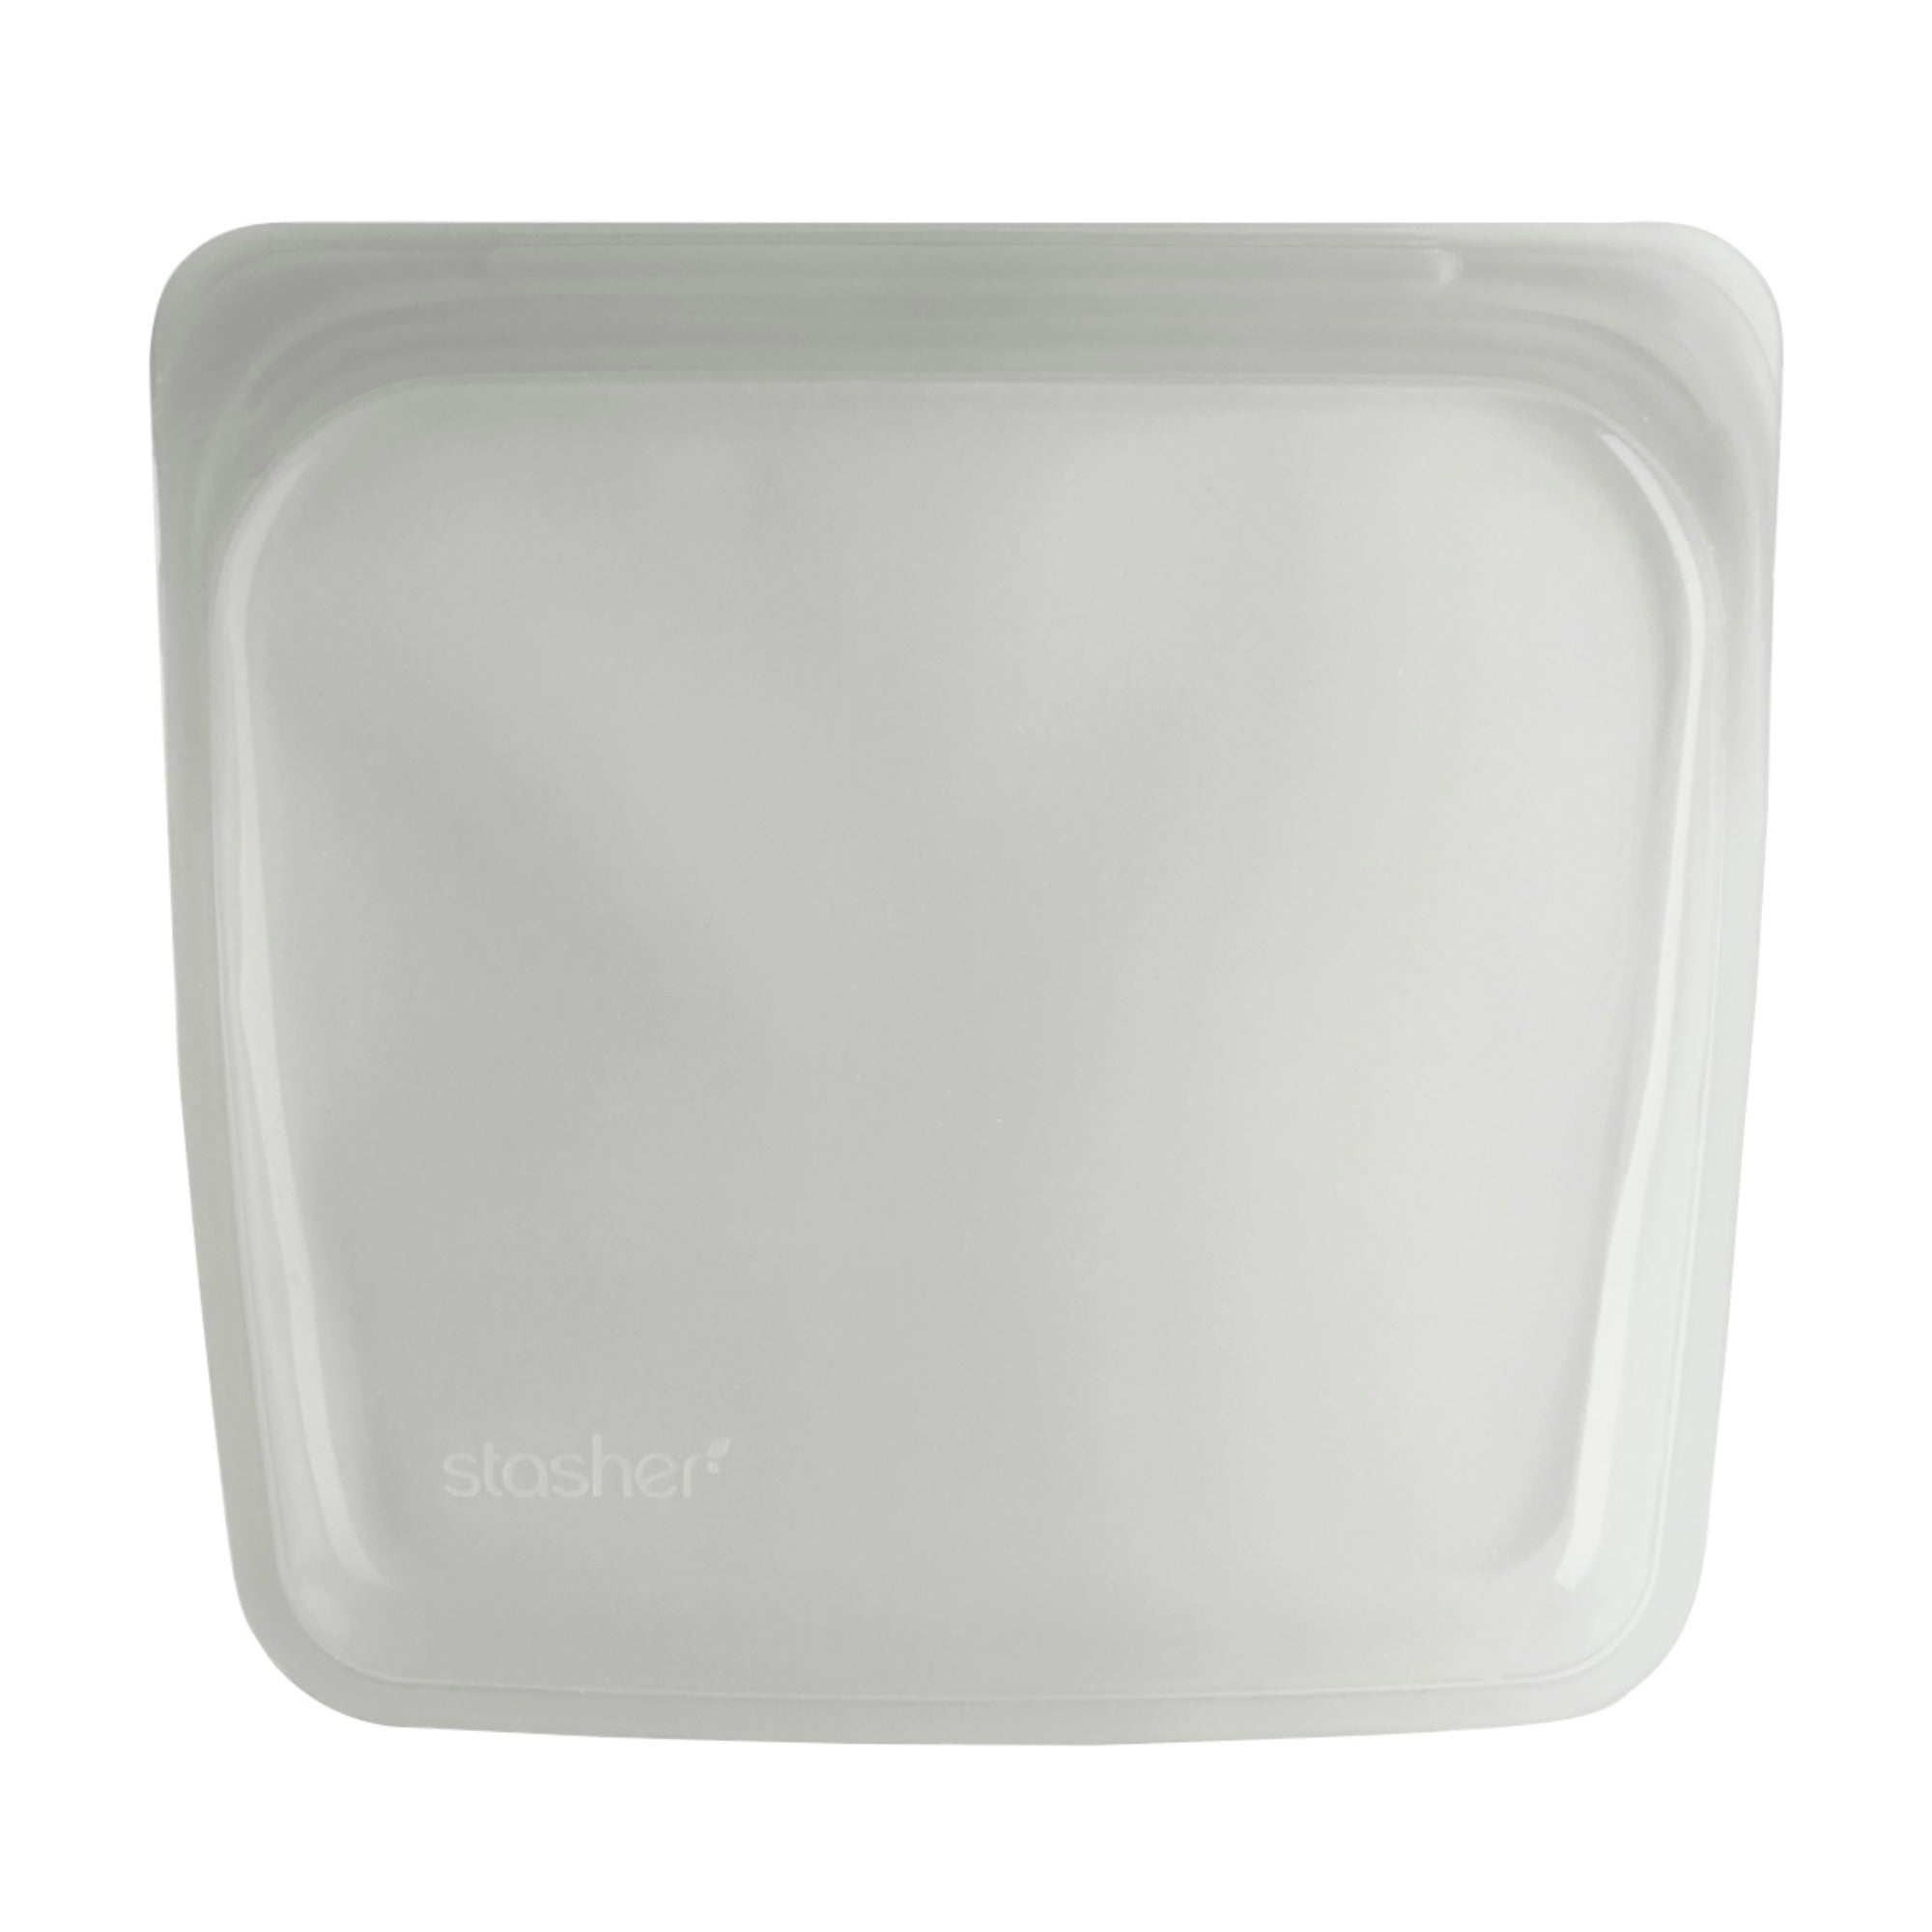 Stasher Reusable Silicone Bag - Sandwich - Clear